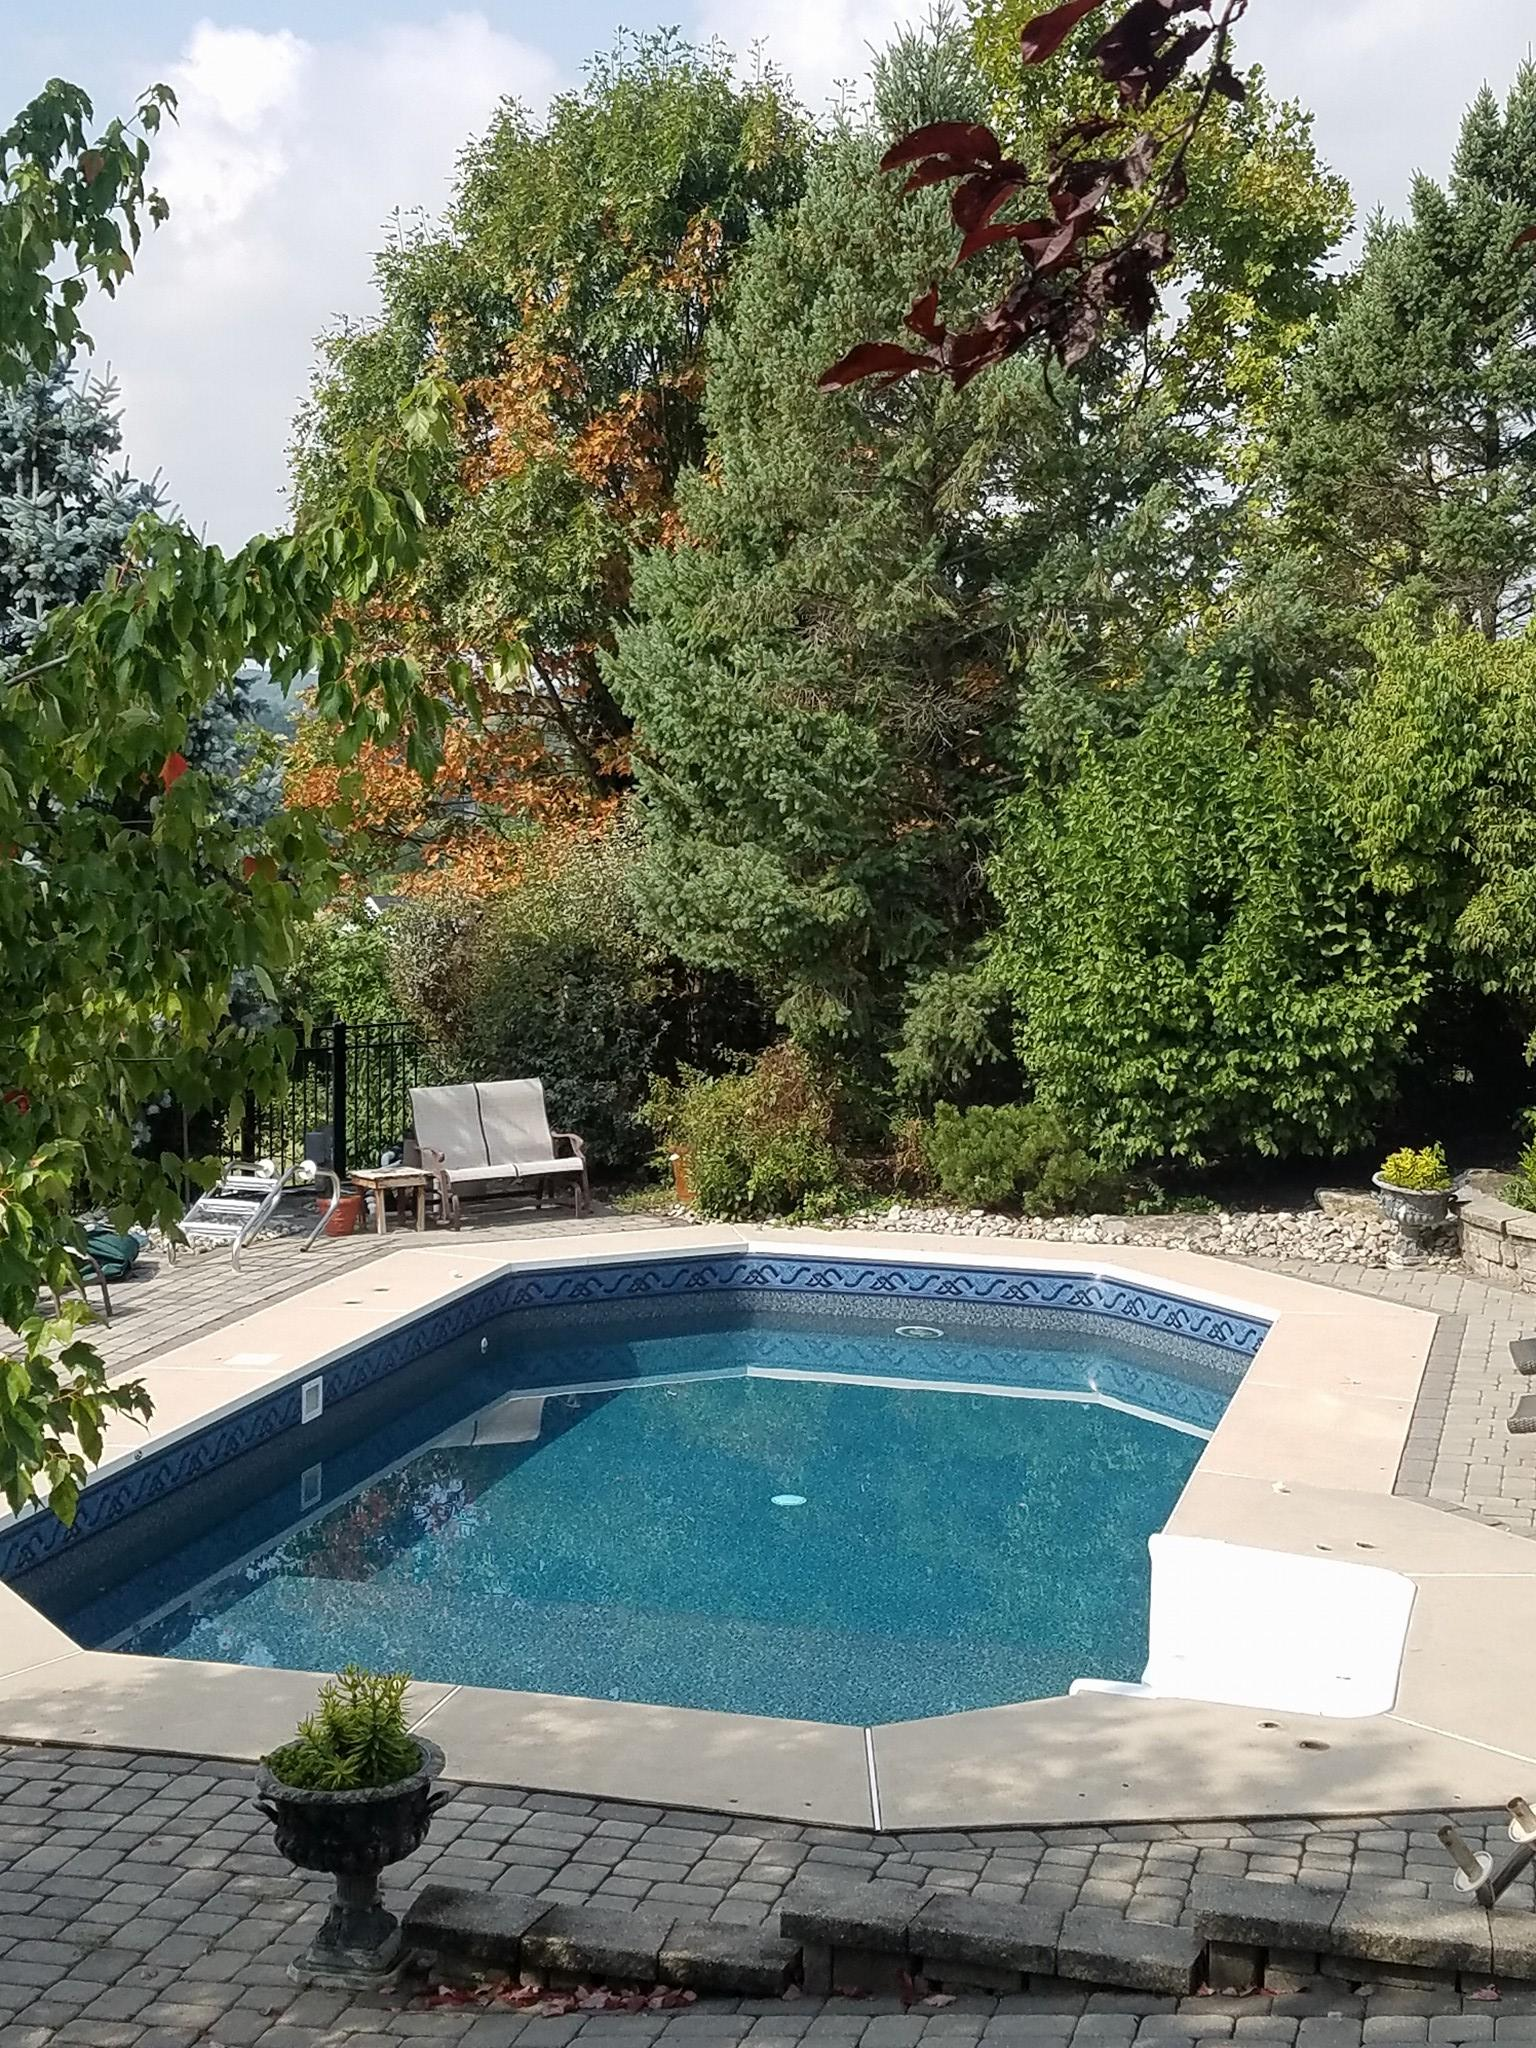 Pool Repair In Pa : Mark s pool service chamberofcommerce